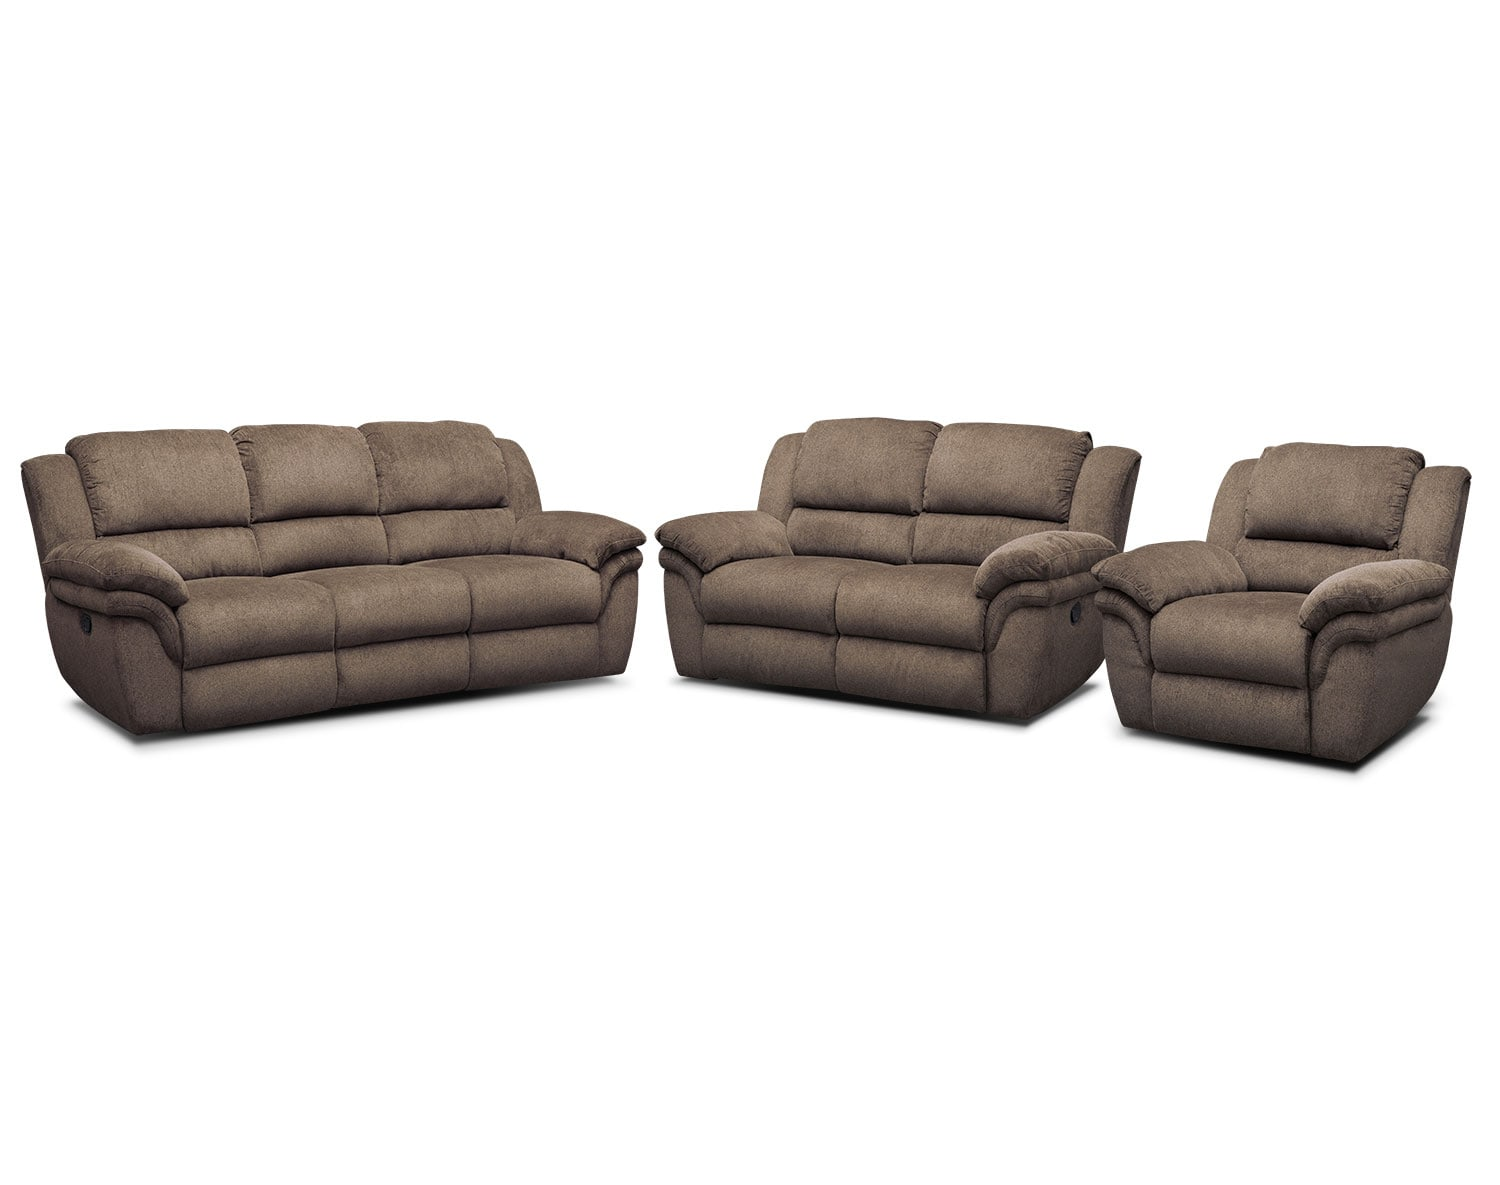 The Aldo Manual Reclining Living Room Collection - Mocha